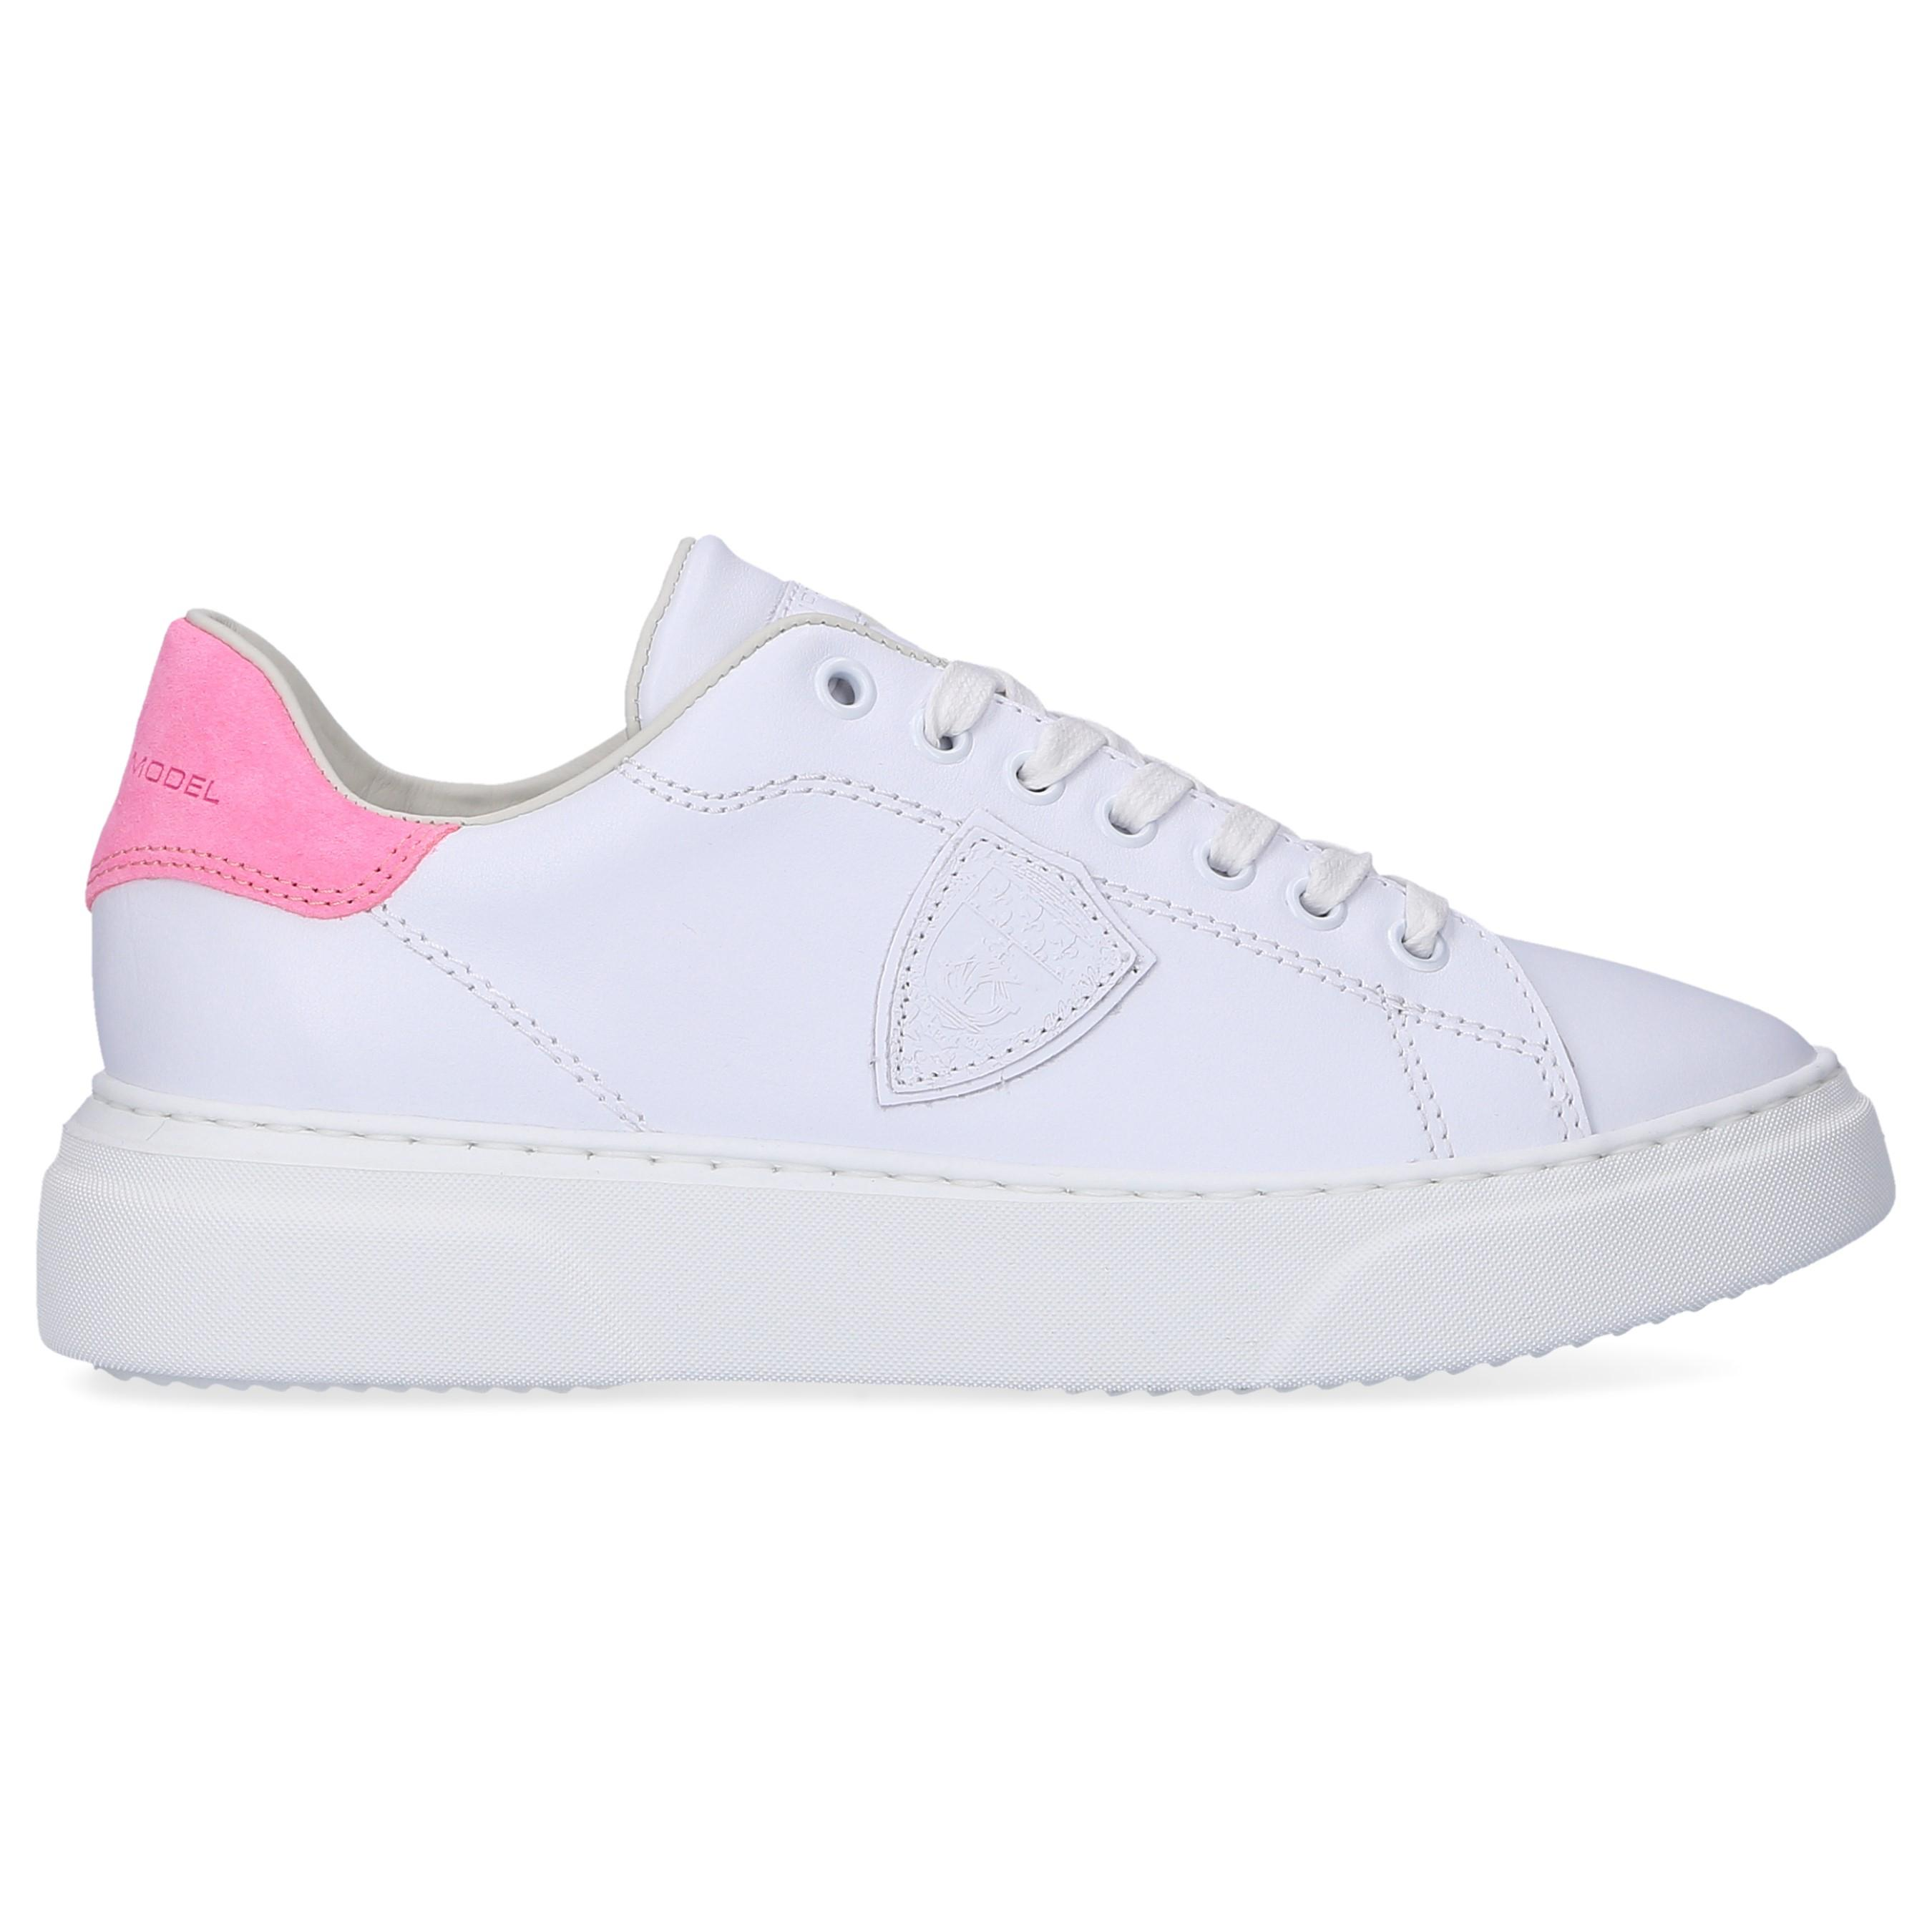 a9683ab89b6f Philippe Model Low-top Sneakers Temple Femme in White - Save 42% - Lyst